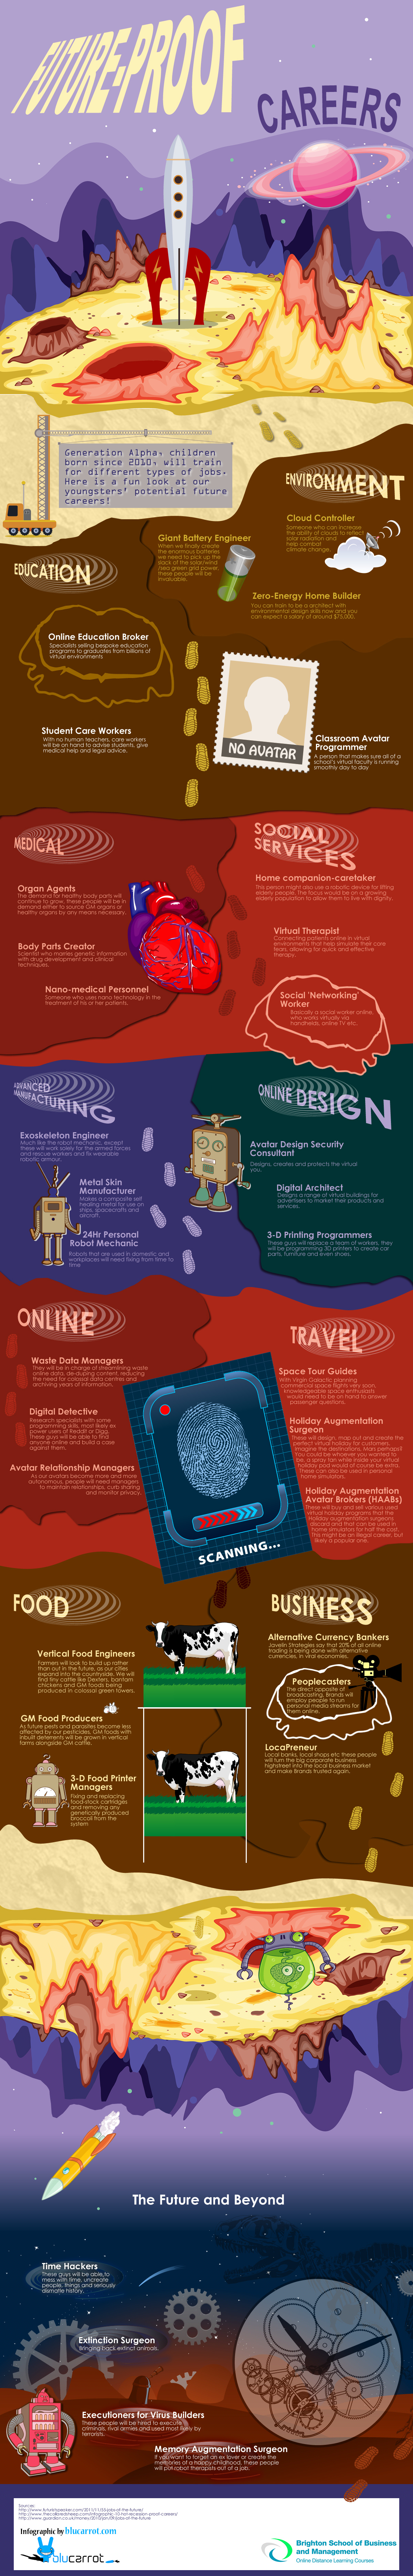 Futureproof Jobs Infographic